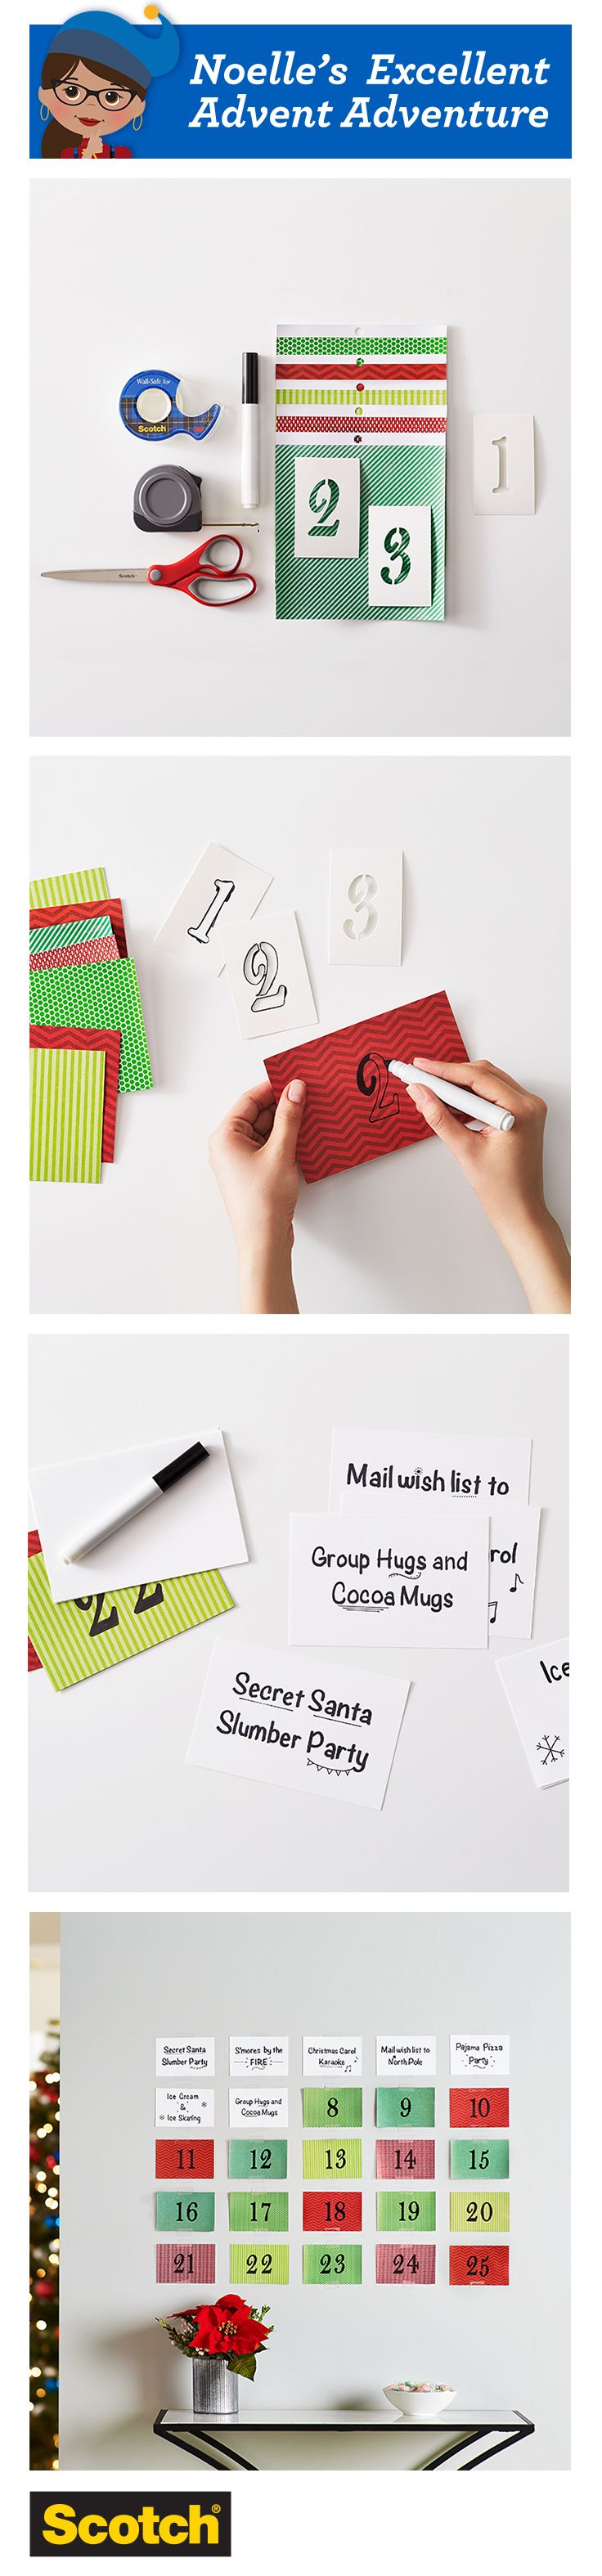 Give your family sentiments sweeter than candy with personalized messages of holiday sharing and joy. Scotch Wall-Safe Tape sticks securely but removes cleanly from walls and other home and office surfaces.